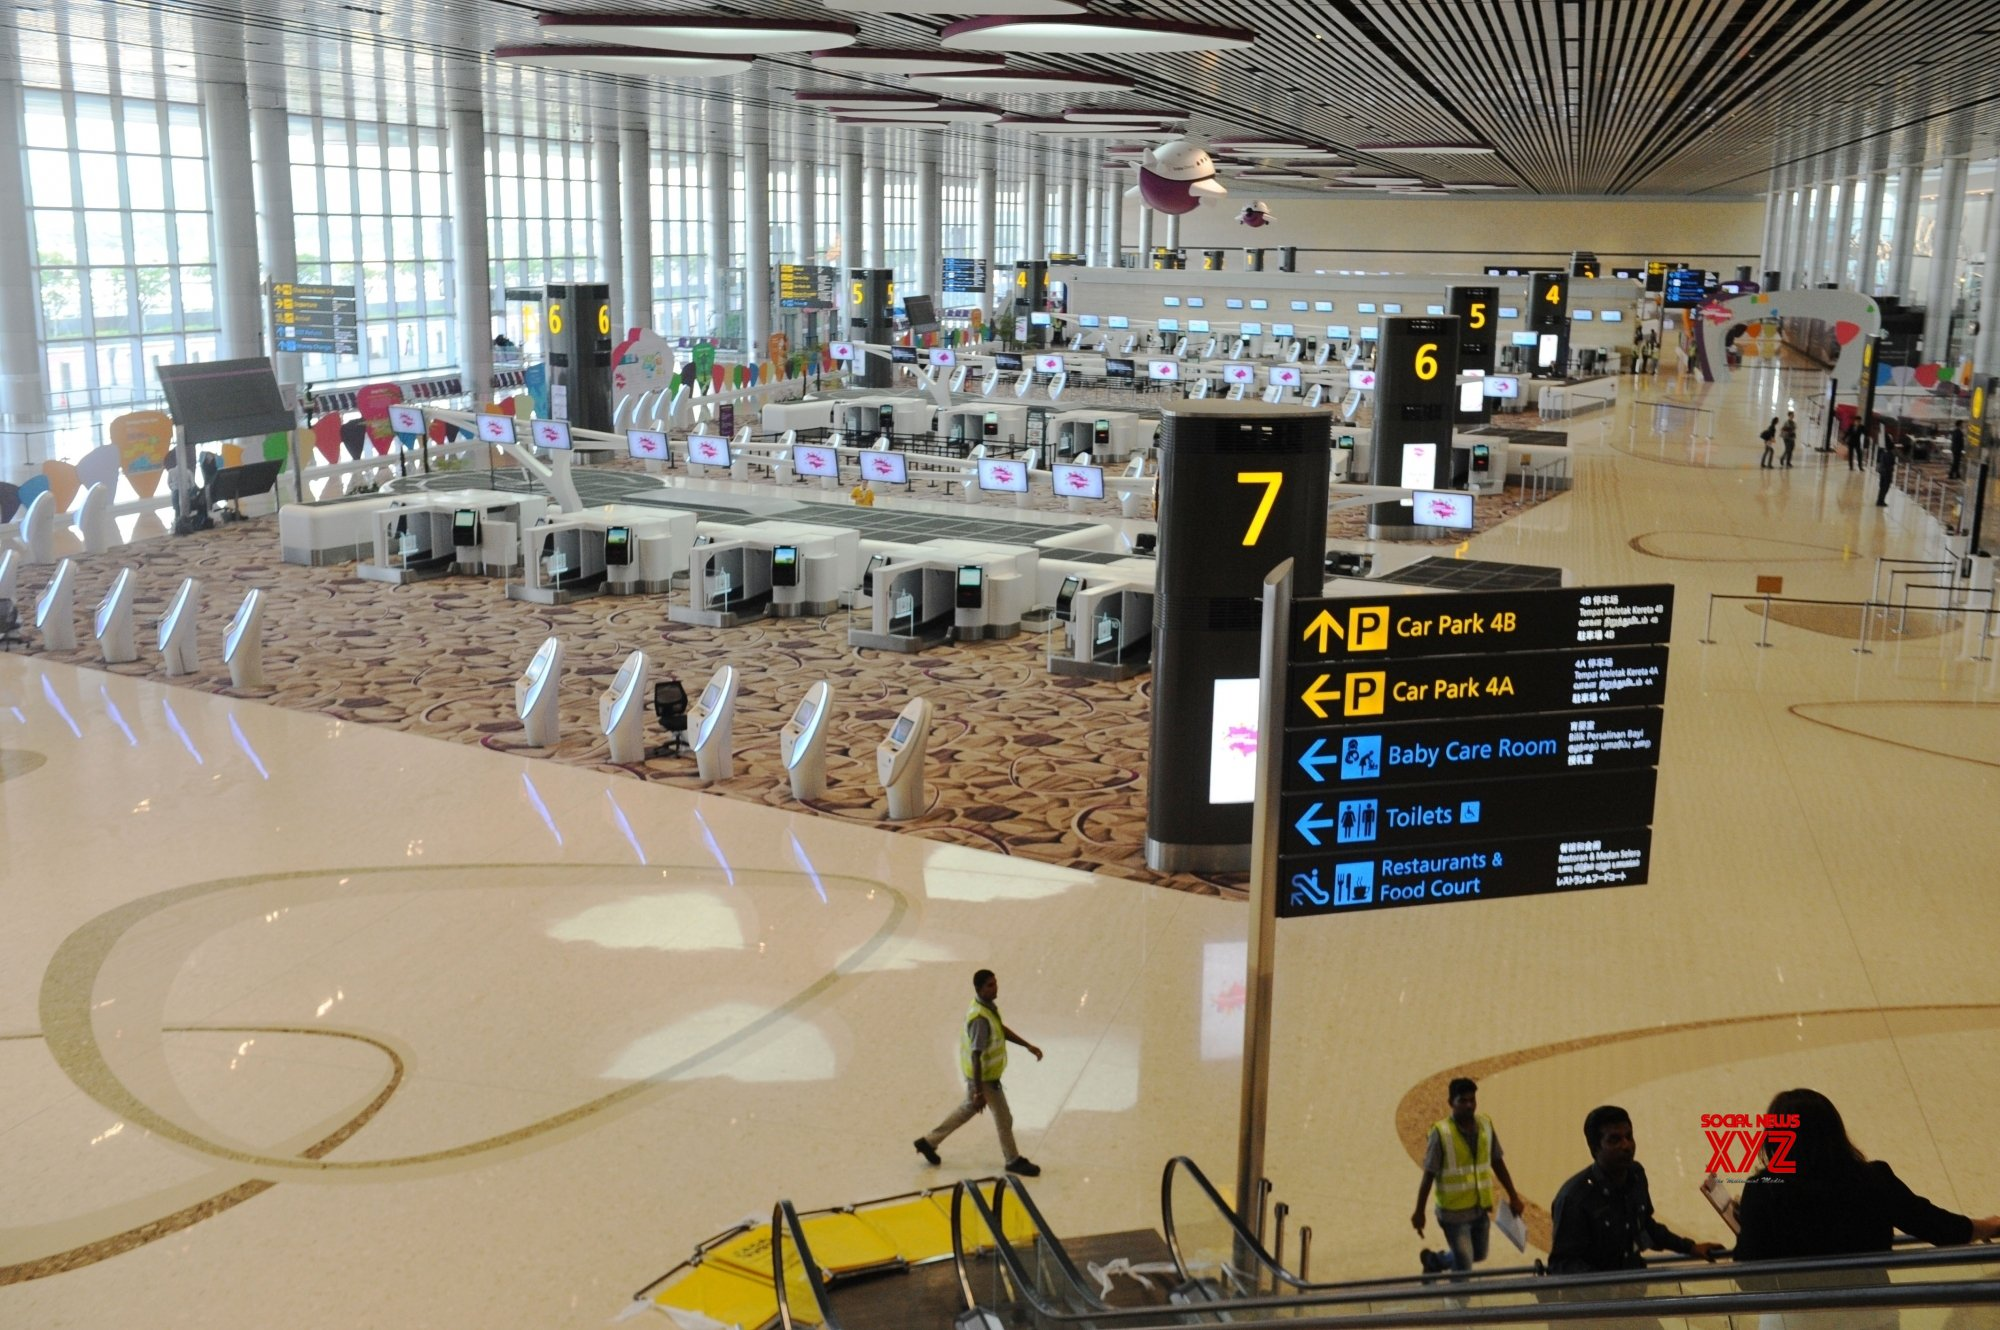 HK travellers to S'pore will have to take on-arrival test